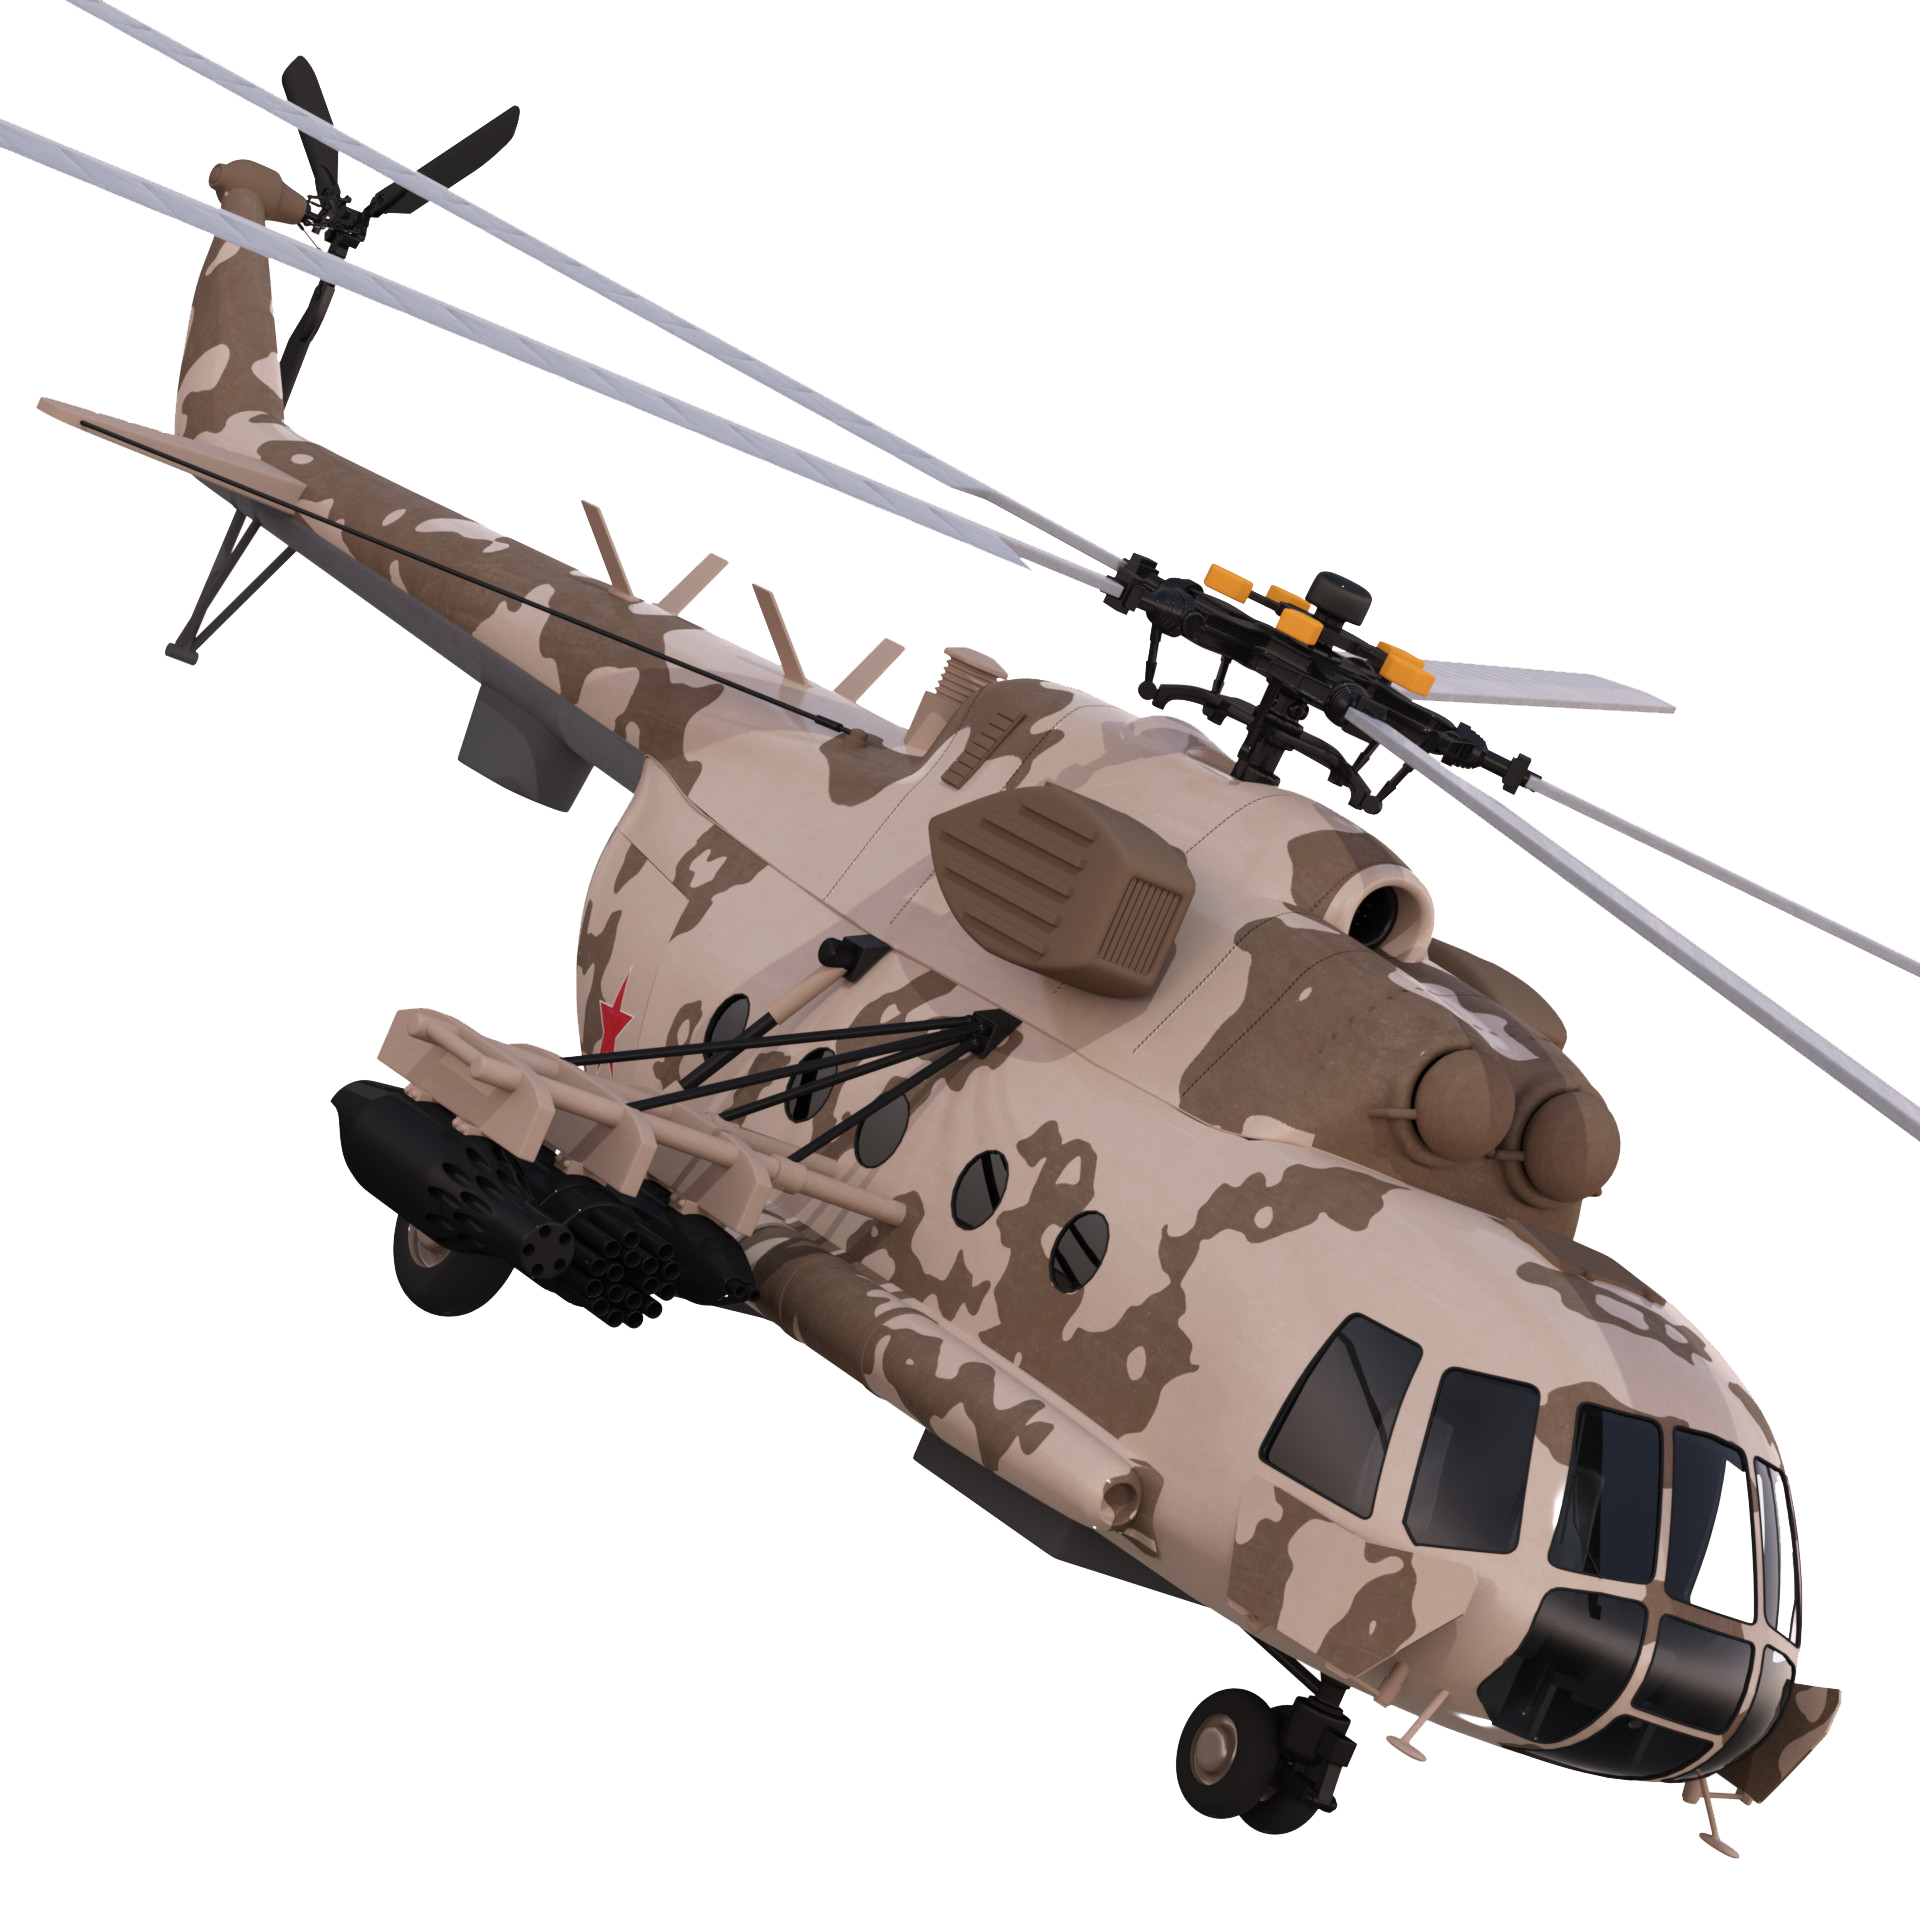 Download Helicopter Png Hd HQ PNG Image | FreePNGImg